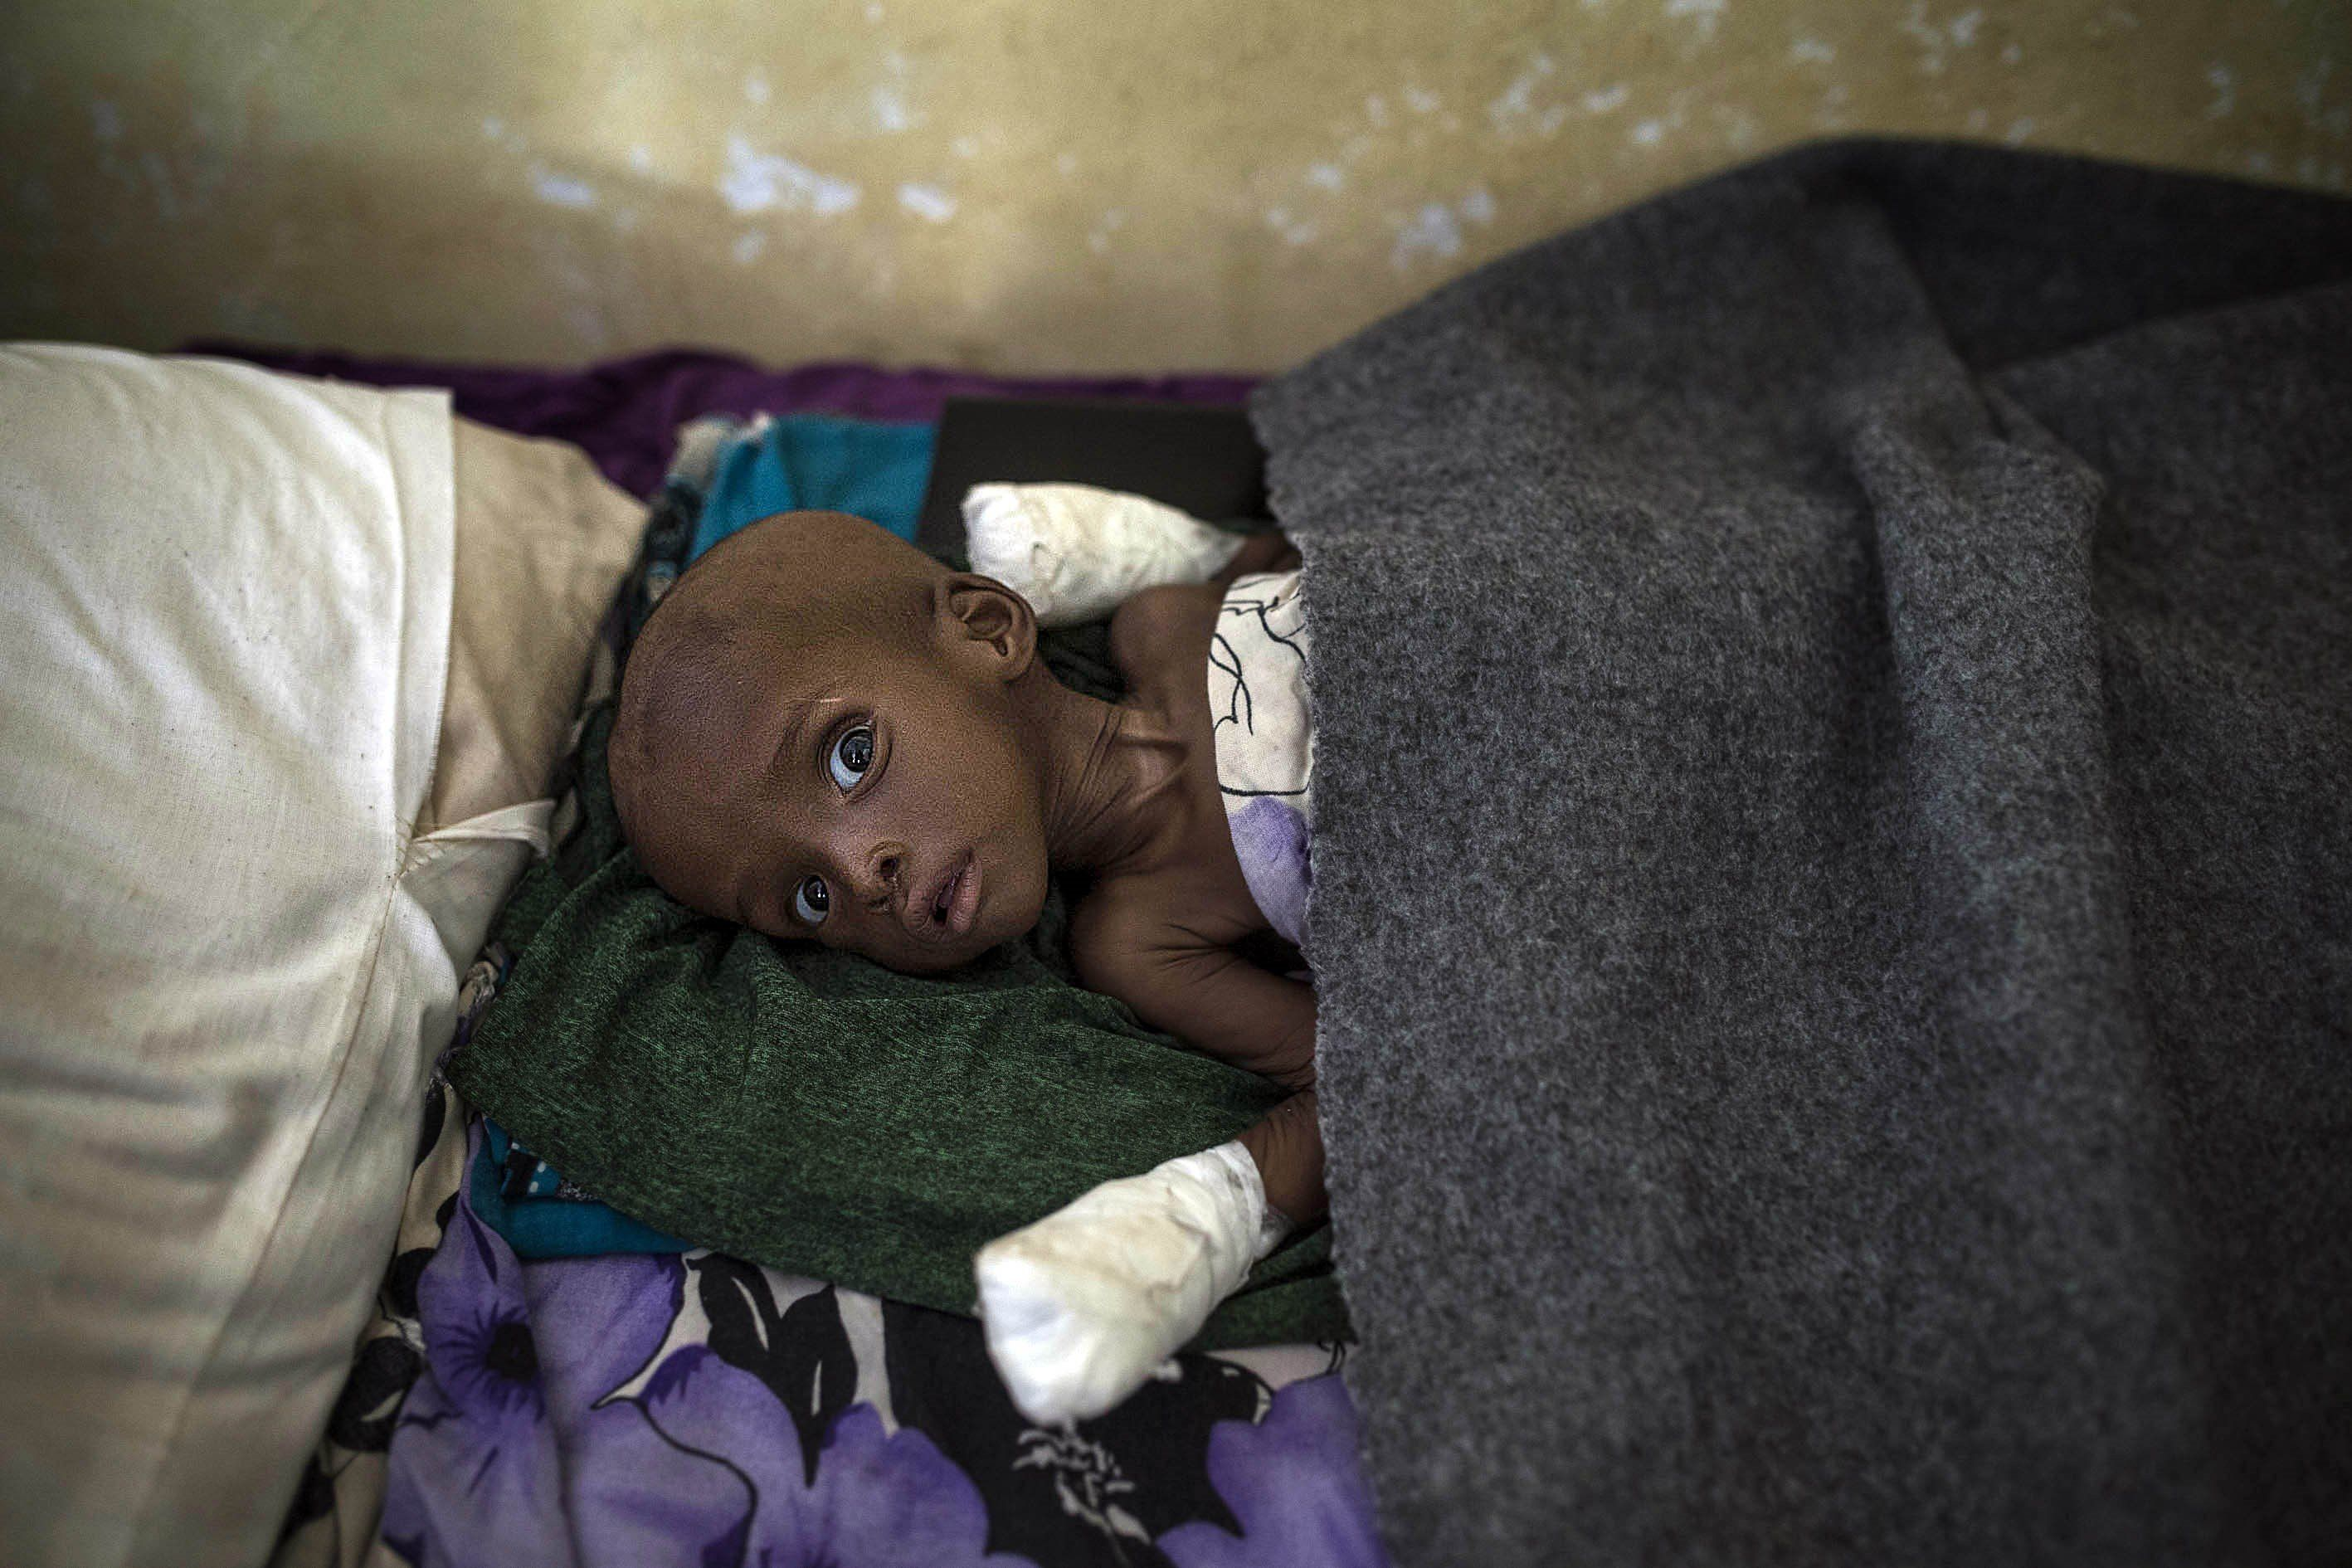 BAIDOA, SOMALIA - MARCH 28: A little kid waits for medical treatment at Bay Regional Hospital in Baidoa, capital of Bay State of Somalia on March 28, 2017. In the central and south parts of Somalia, extreme drought causes famine, hunger and make people vulnerable to diseases and epidemics such as cholera and diarrhoea. Somalians, forced to live in the Balanbaalis camp in Somalia's Bay state due to clashes and terror in the country, are fighting drought and disease at makeshift tents in harsh conditions. As there are very limited water sources in the region, people are queuing for water at wells drilled by aid organizations. (Photo by Arif Hudaverdi Yaman/Anadolu Agency/Getty Images)